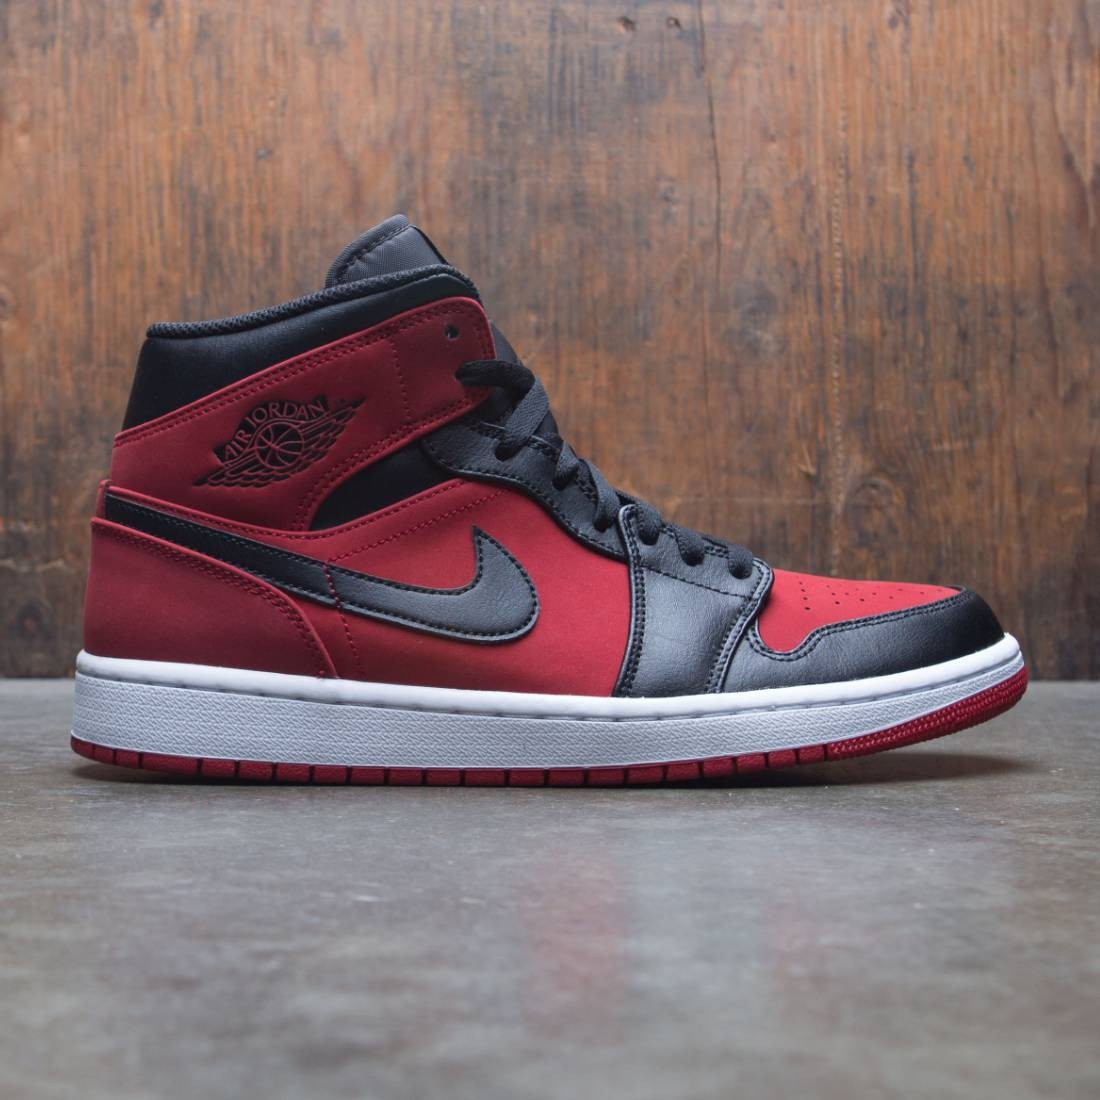 new style 3520f ec114 jordan men air jordan 1 mid gym red black white